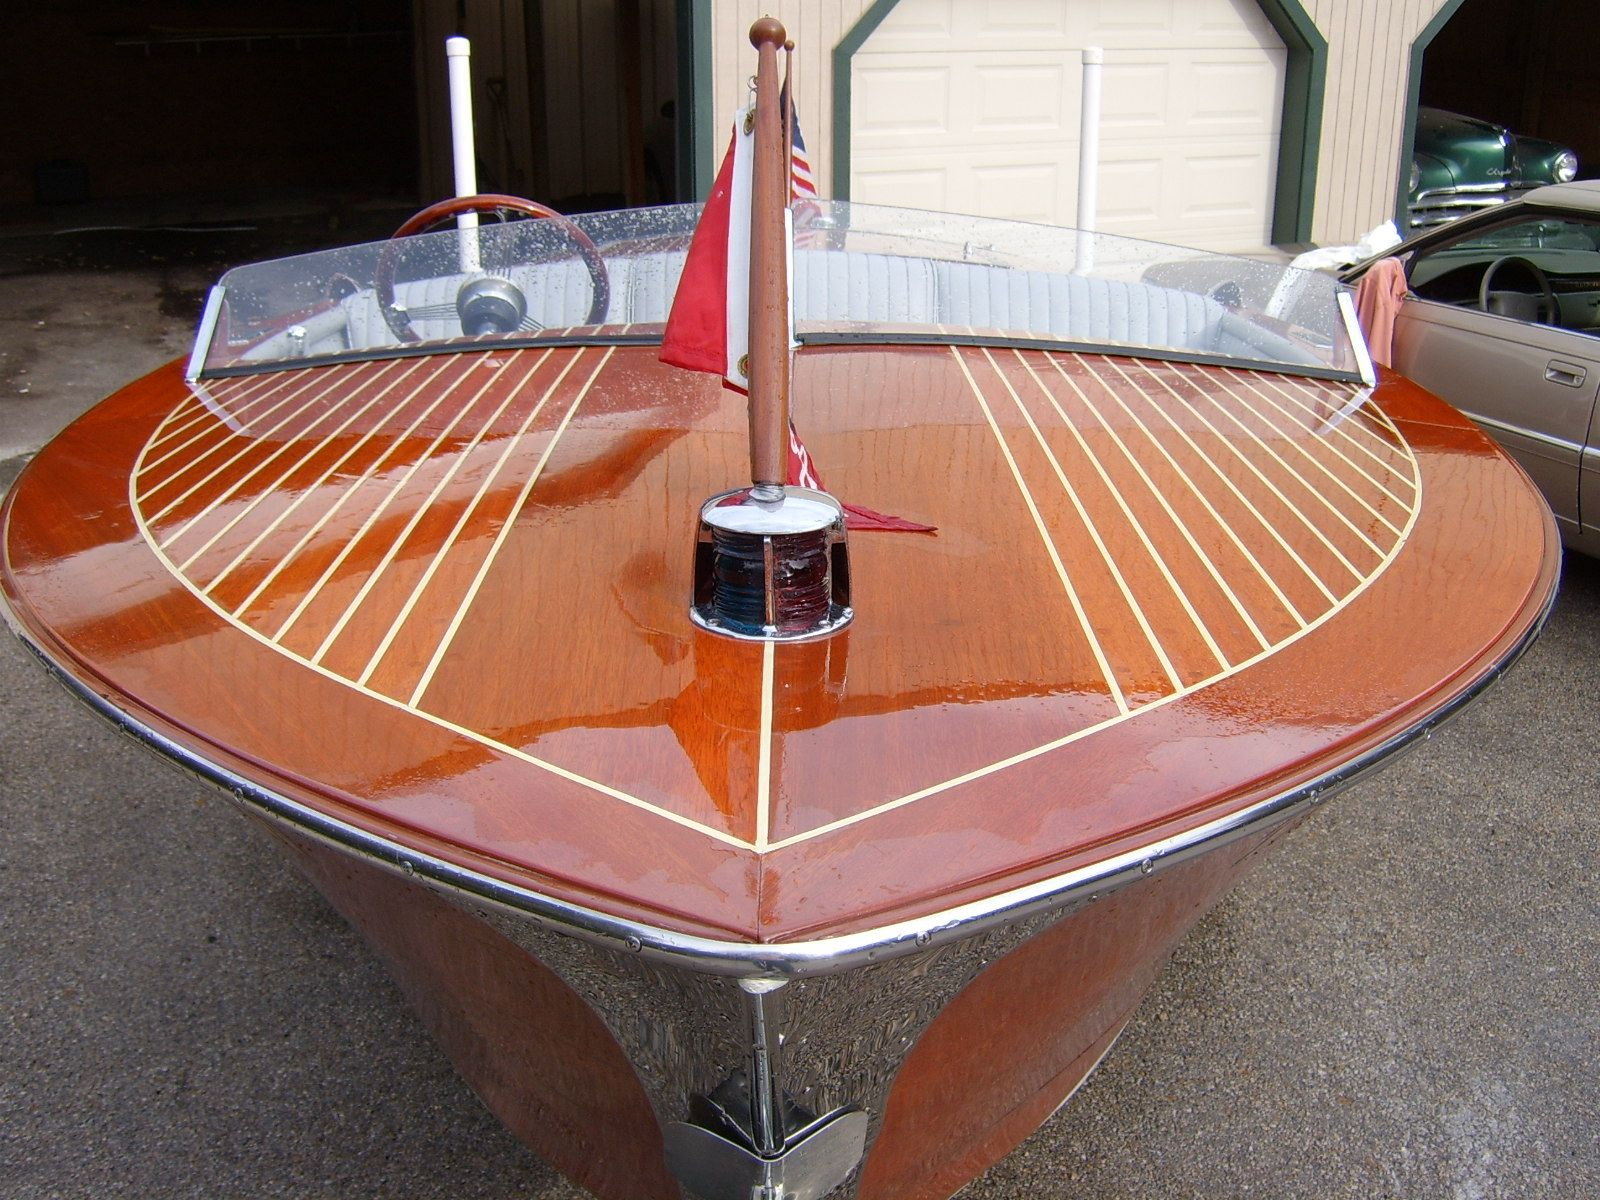 Chris Craft runabout - Google Search | slo318 Wood Boats | Chris craft boats, Runabout boat ...